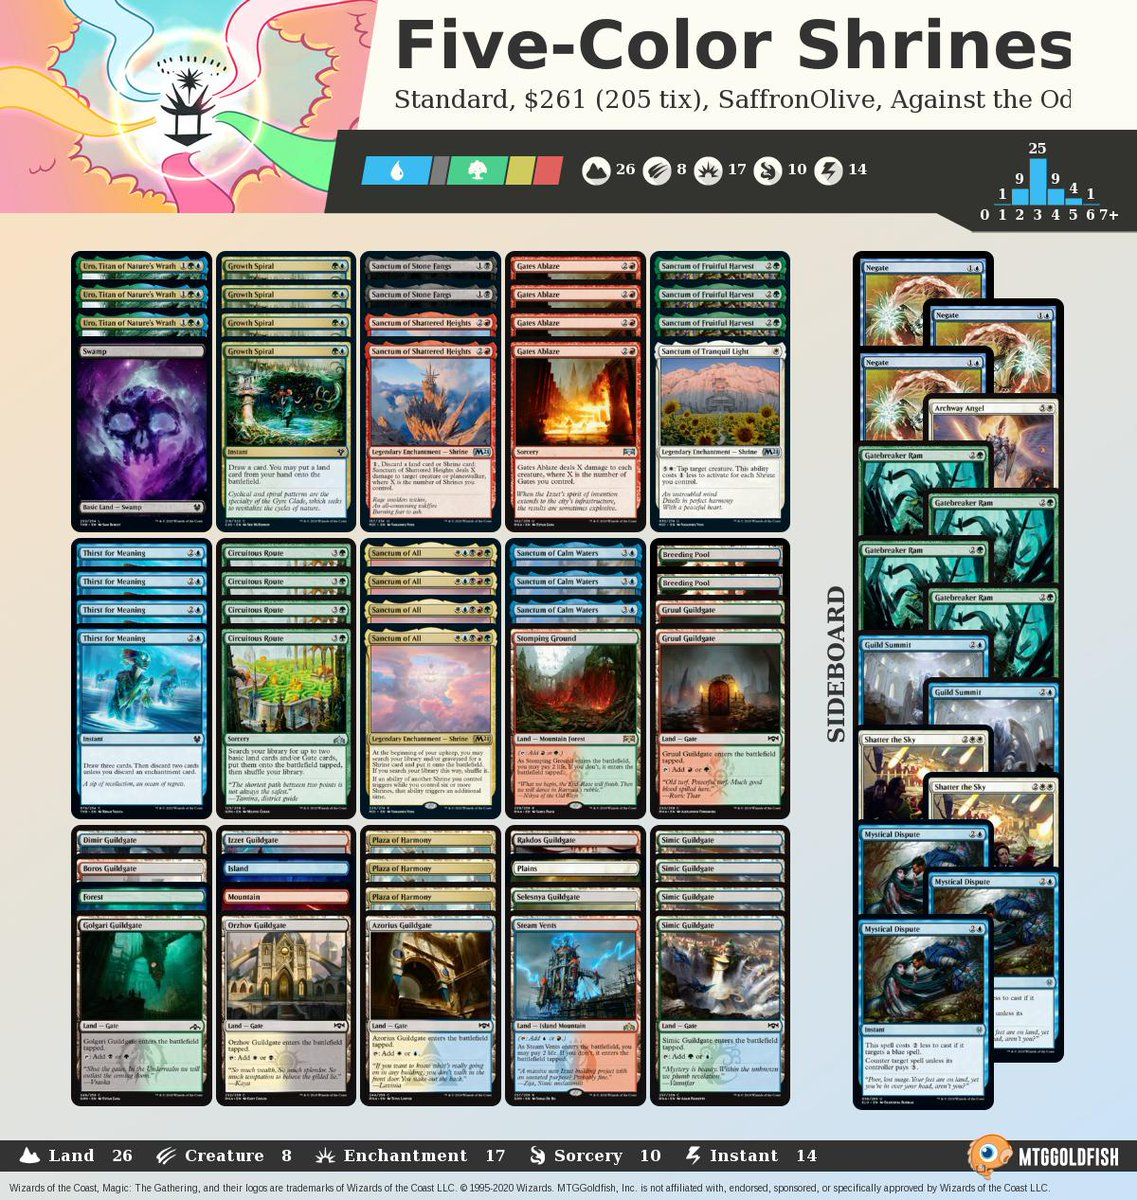 Against the Odds: Five-Color Shrines (Standard) mtggoldfish.com/articles/again… #mtg #mtgo #againsttheodds